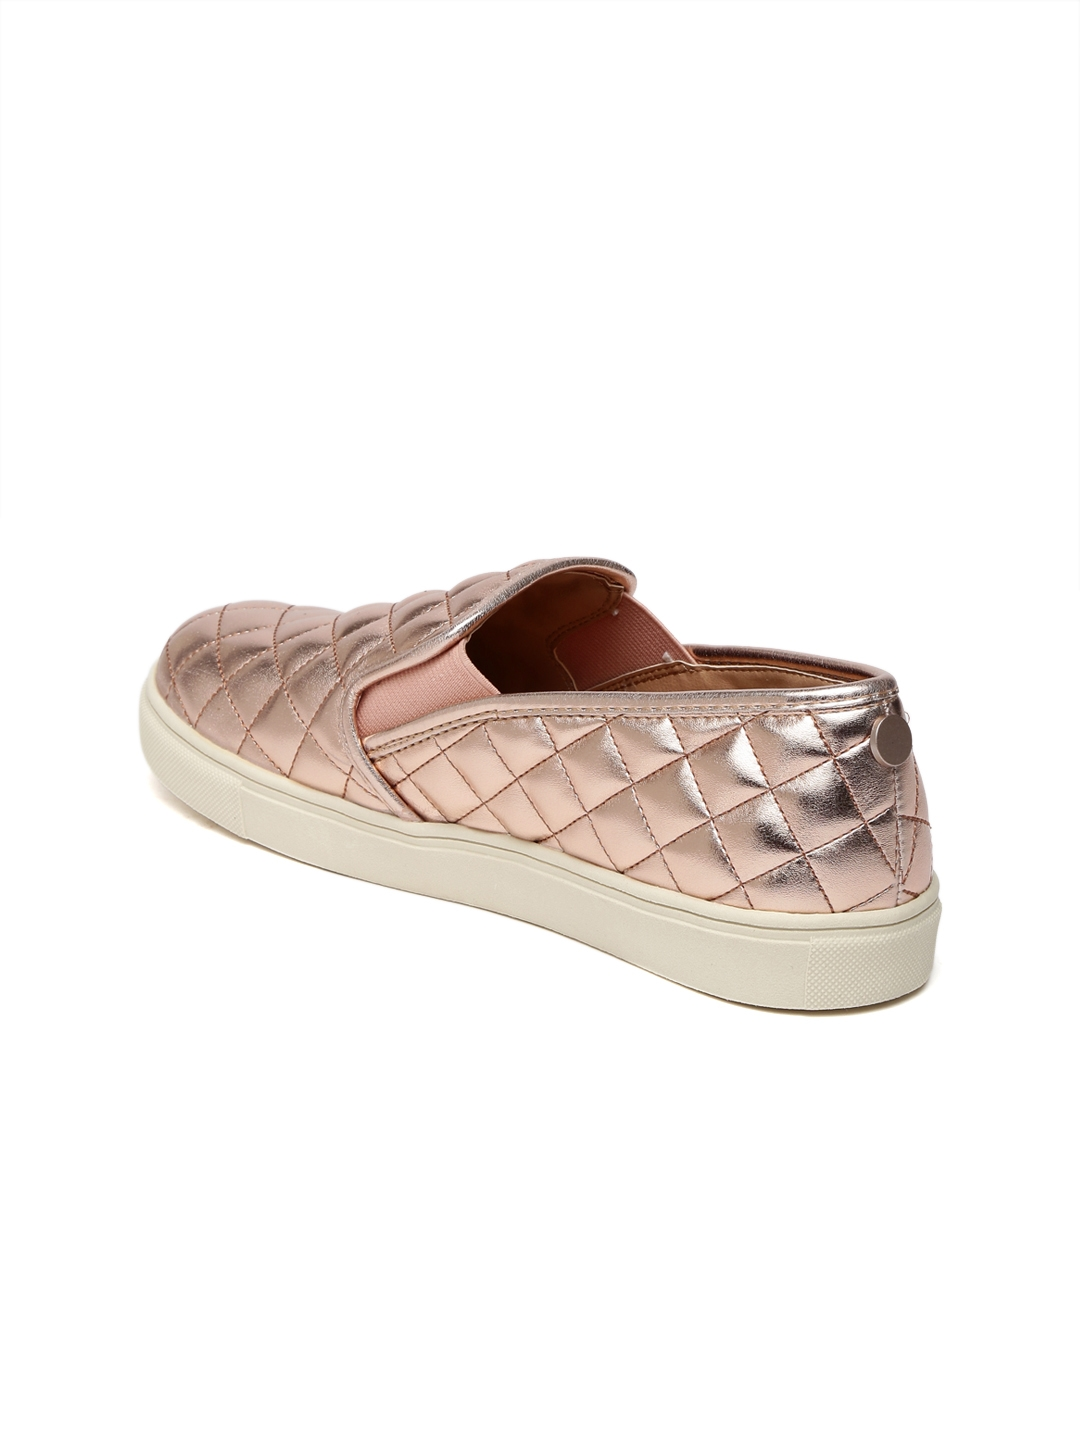 4ef48d67323 Buy Steve Madden Women Rose Gold Toned Slip On Sneakers - Casual ...